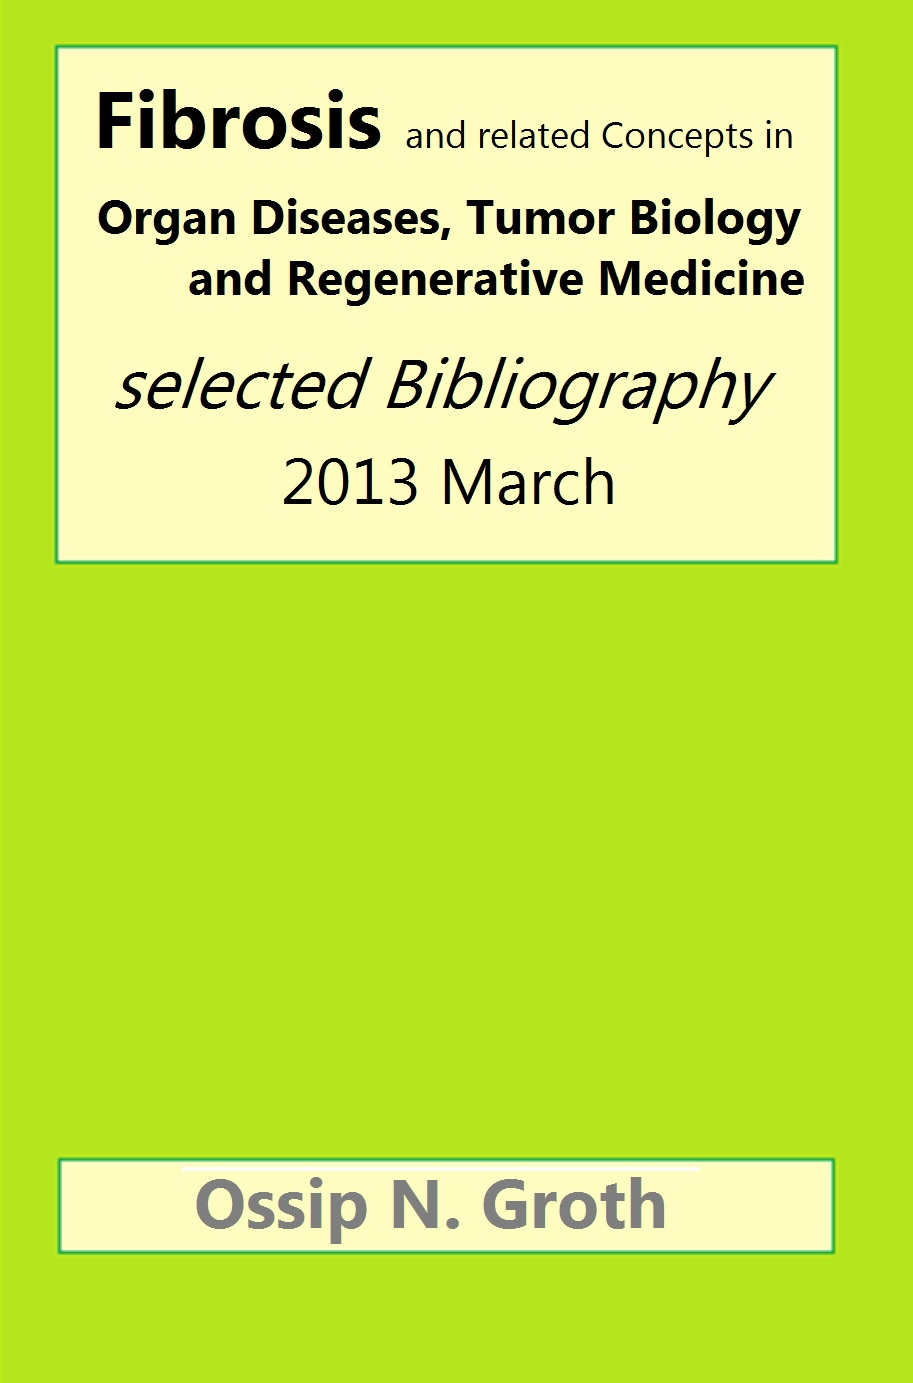 Fibrosis and related Concepts in Organ Diseases, Tumor Biology and Regenerative Medicine selected bibliography